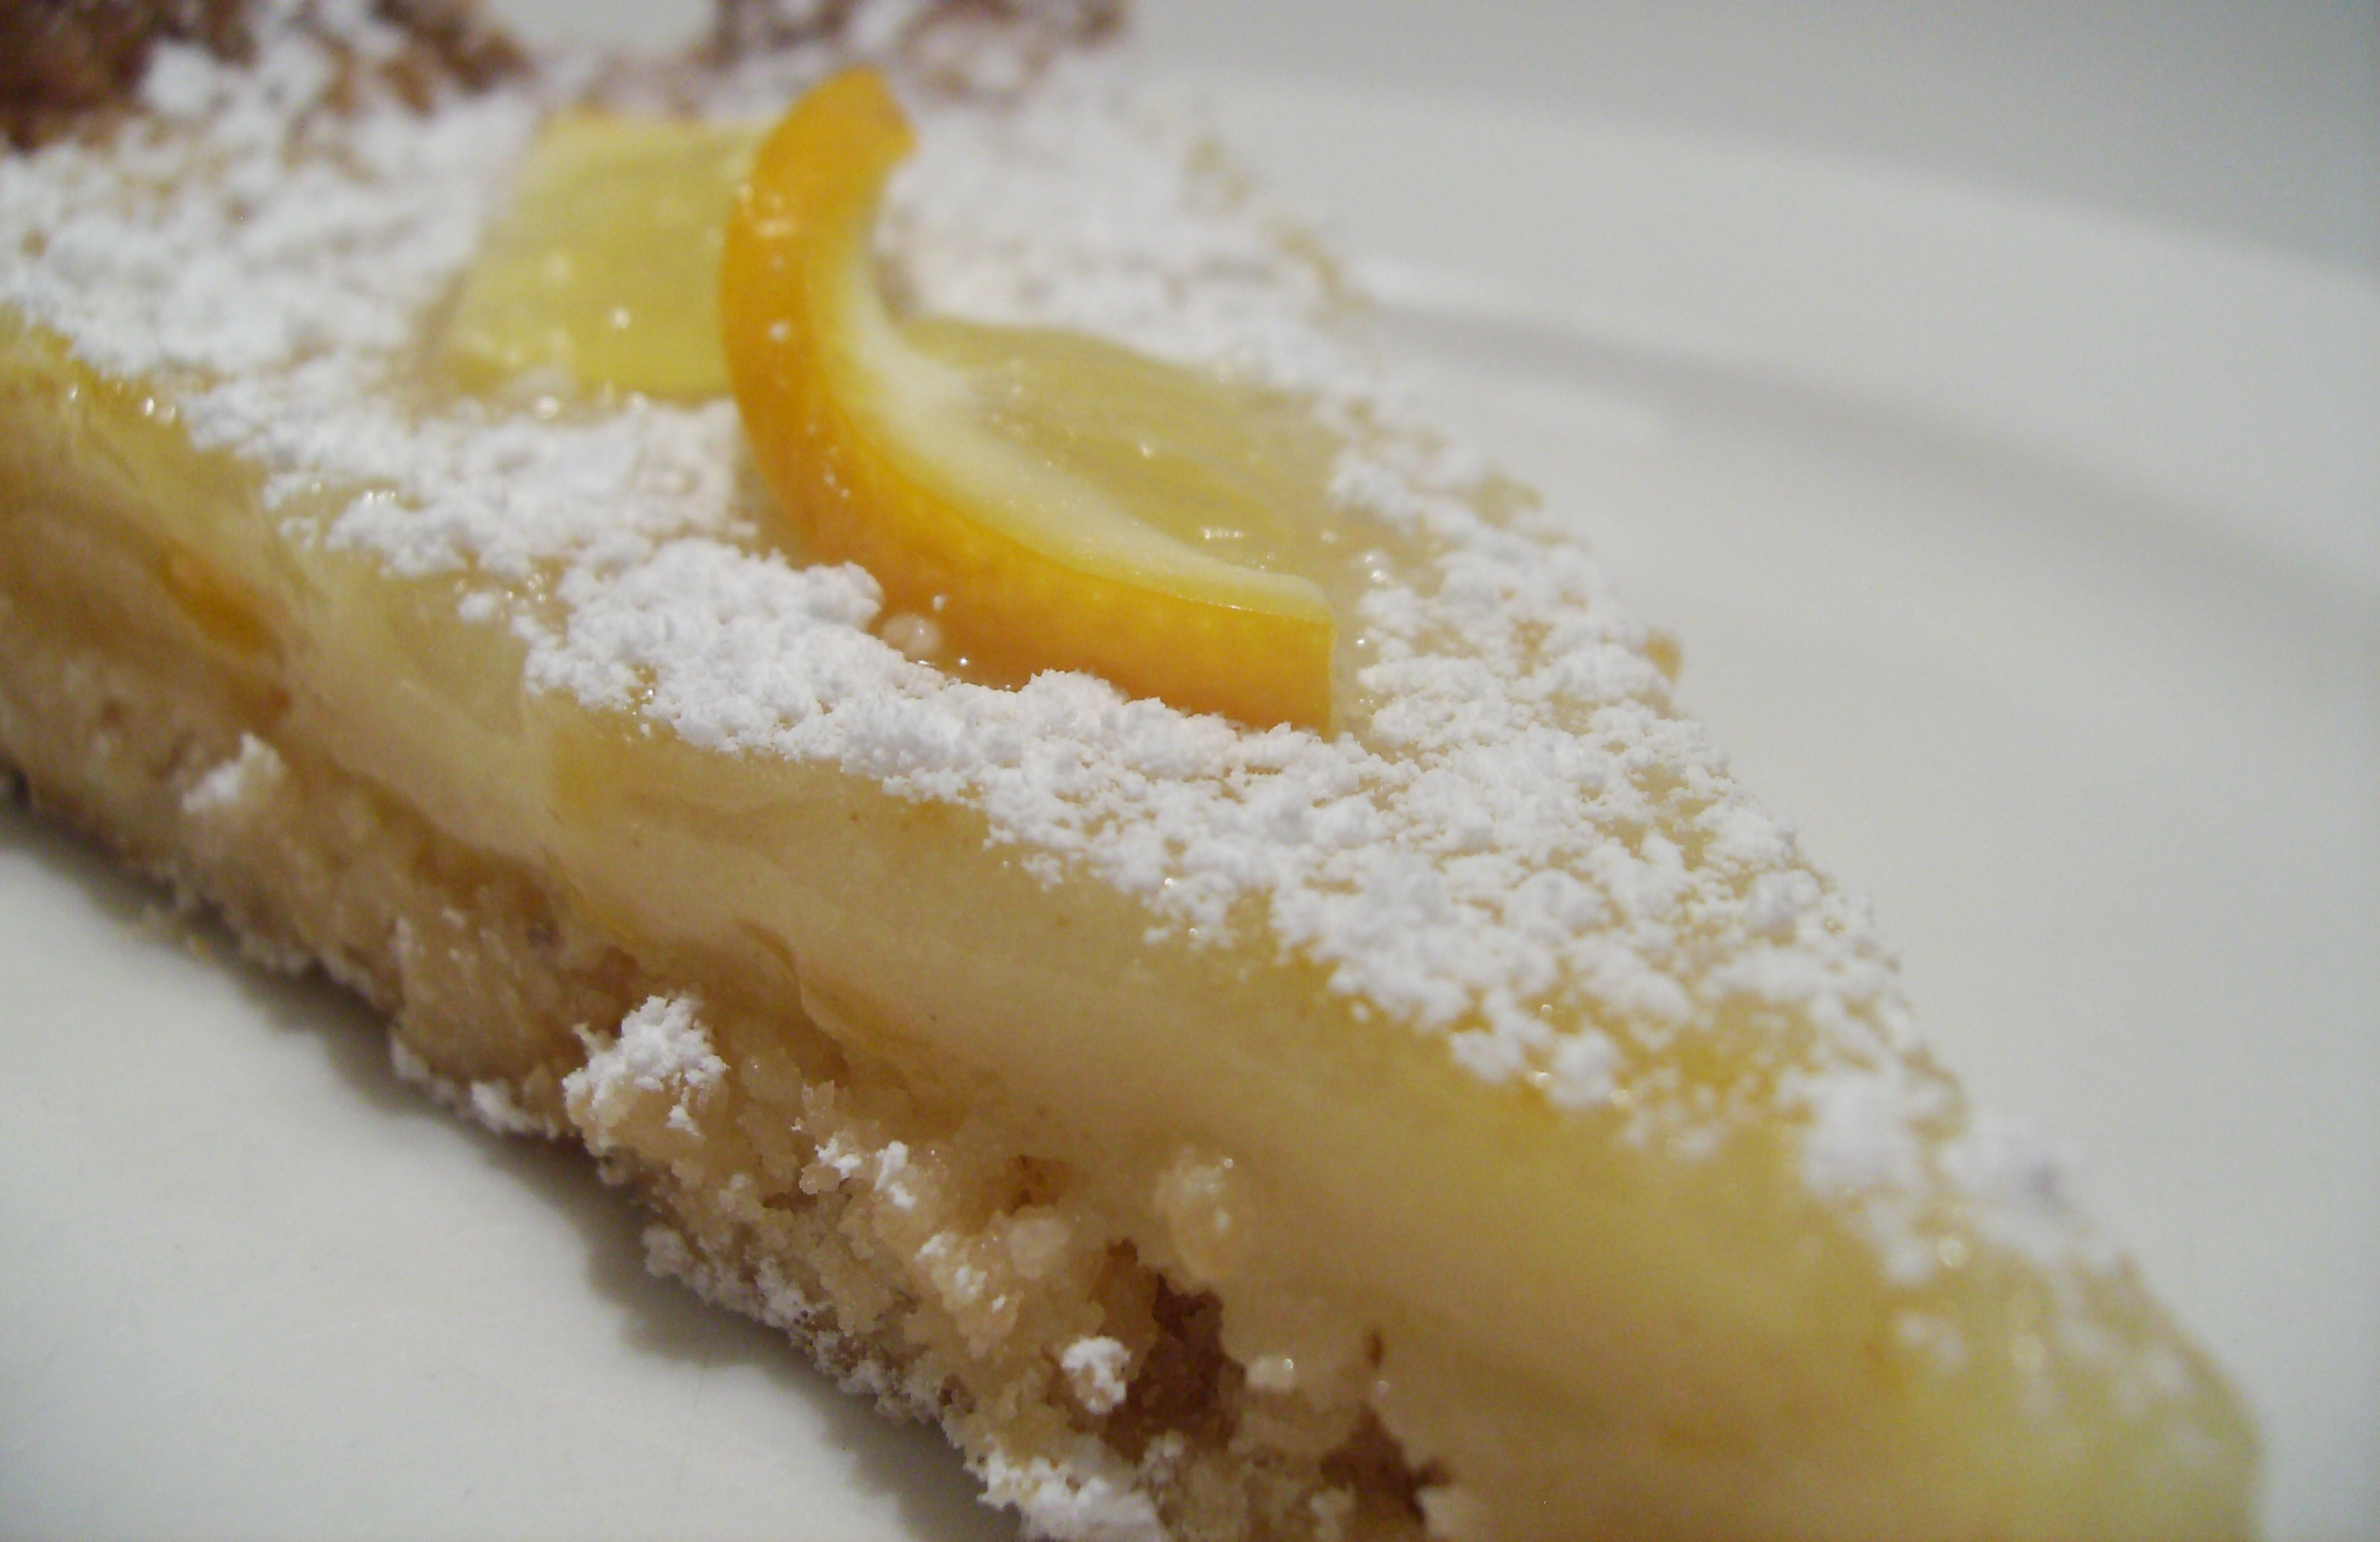 ... » Blog Archive 3/7 Meyer Lemon Tart » Exploits of a Vegan Wannabe